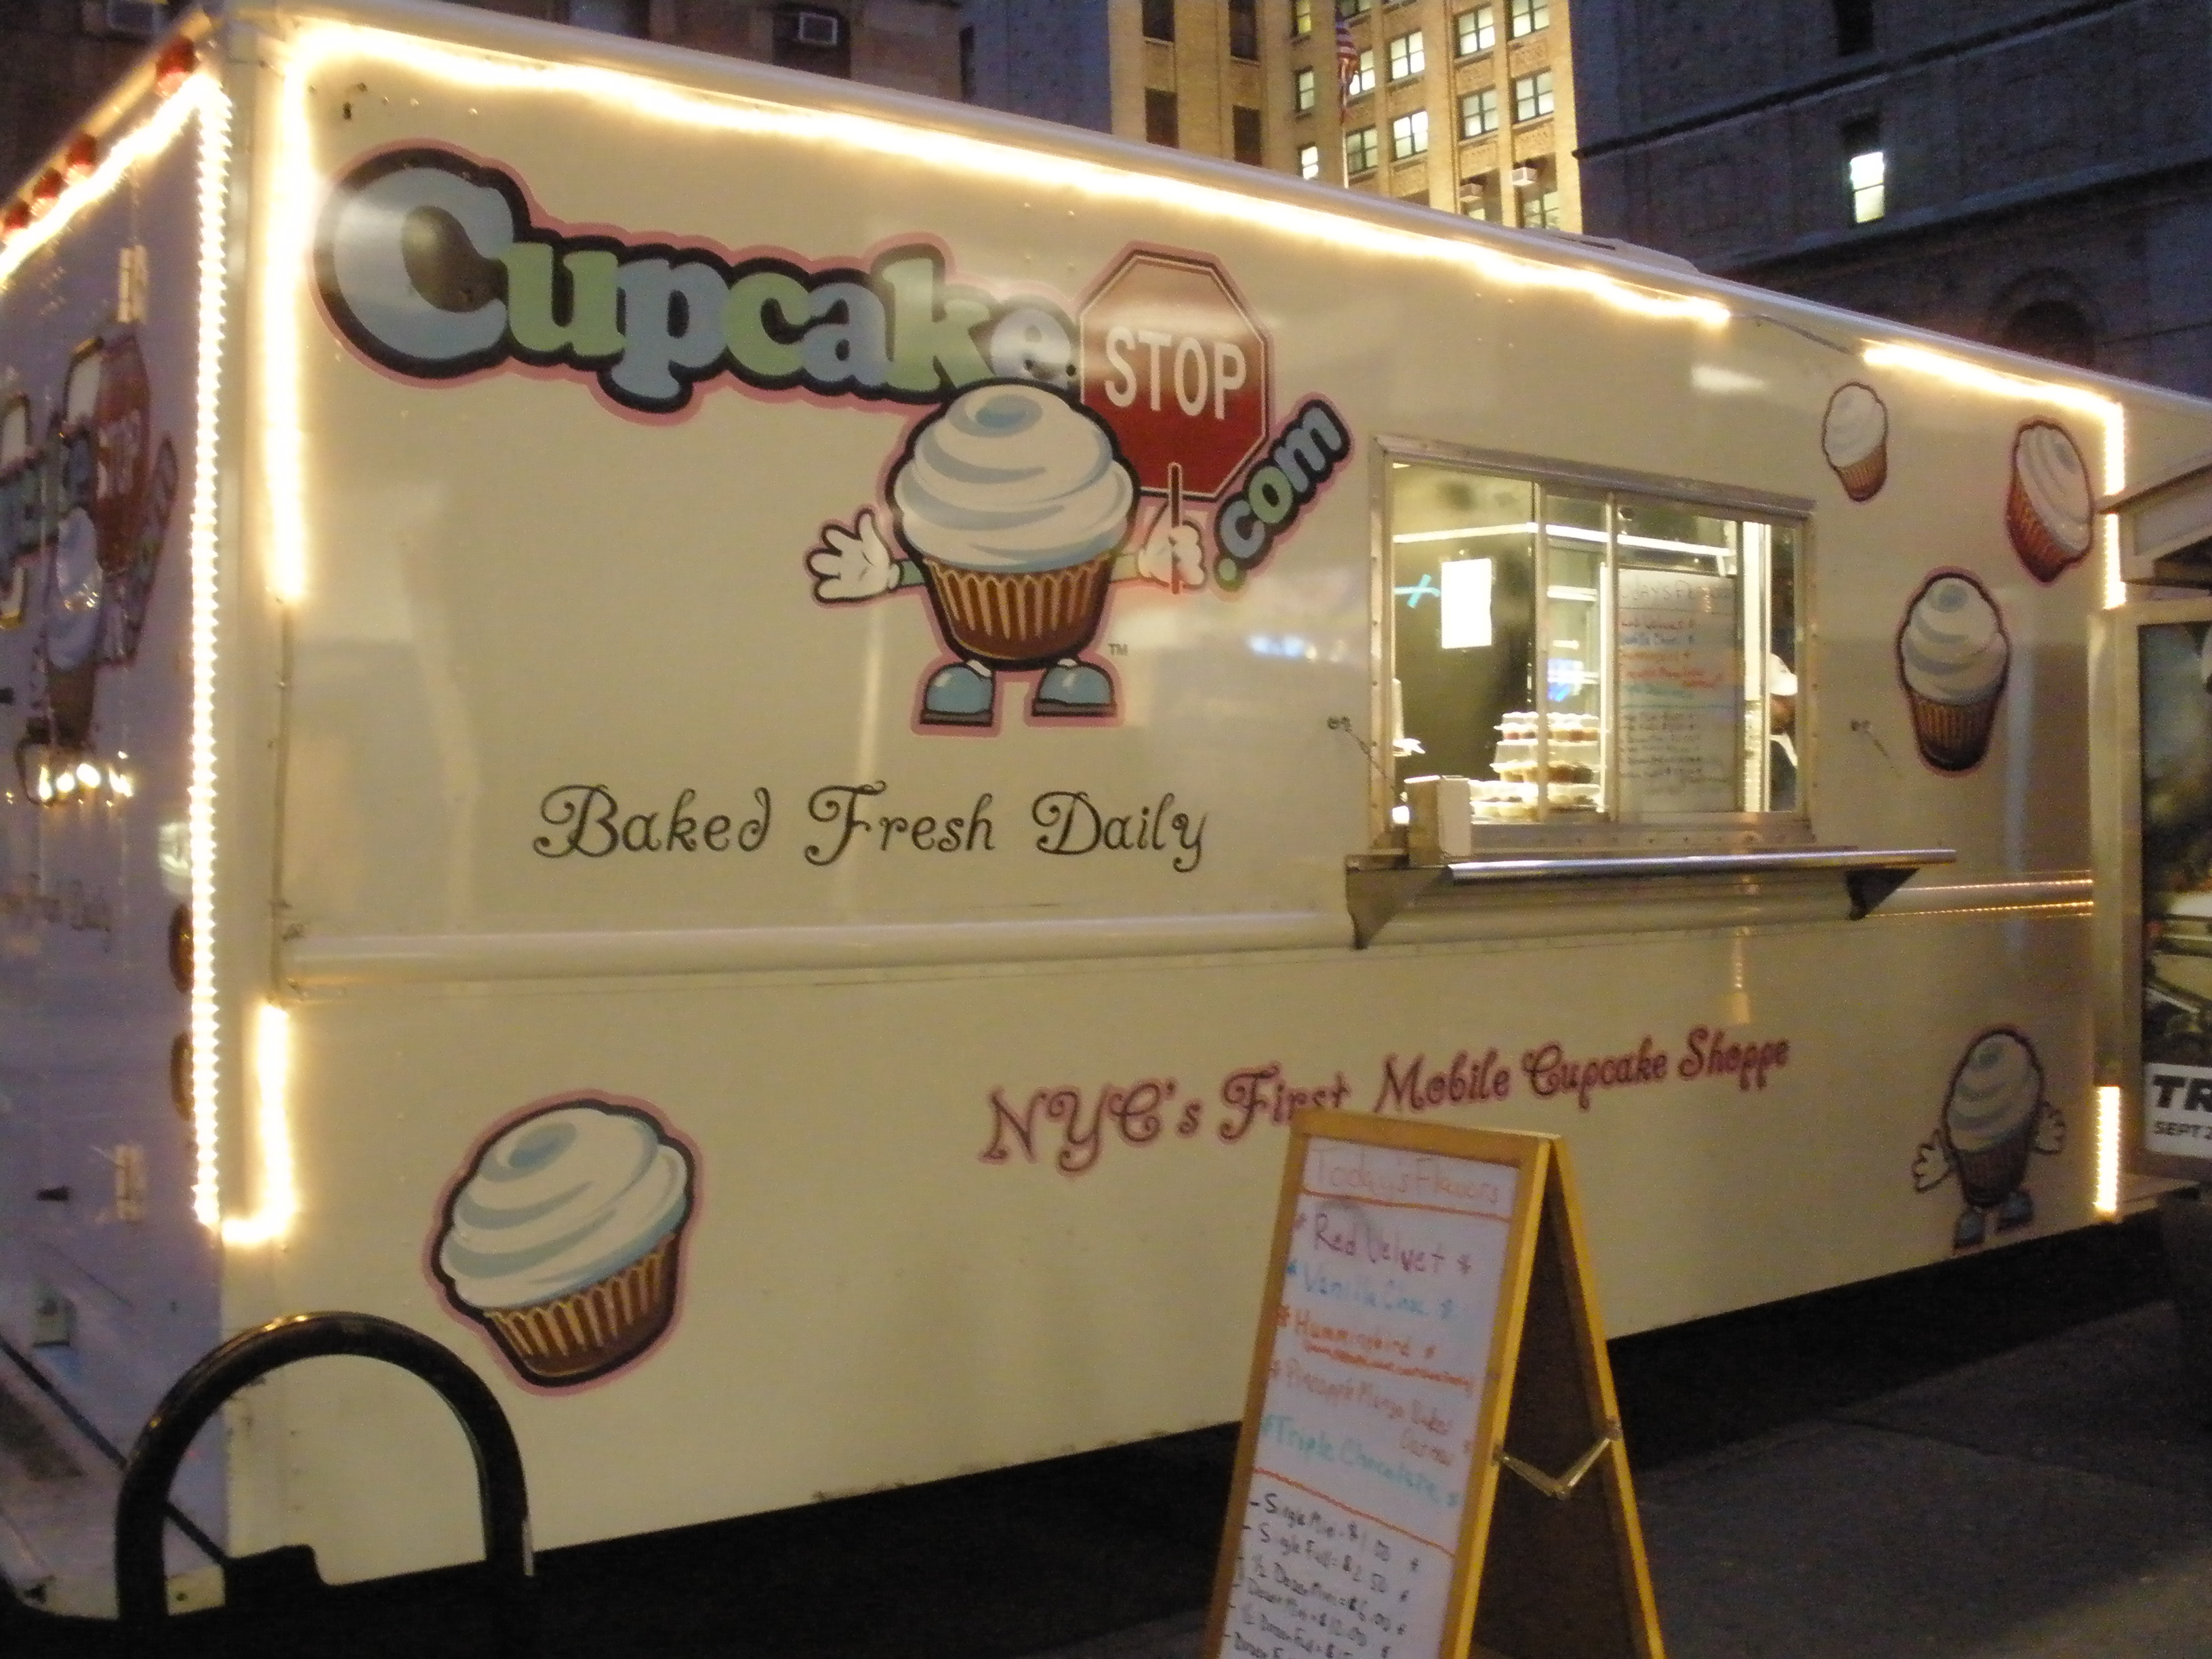 Cupcake Stop, the cupcake truck in NYC.